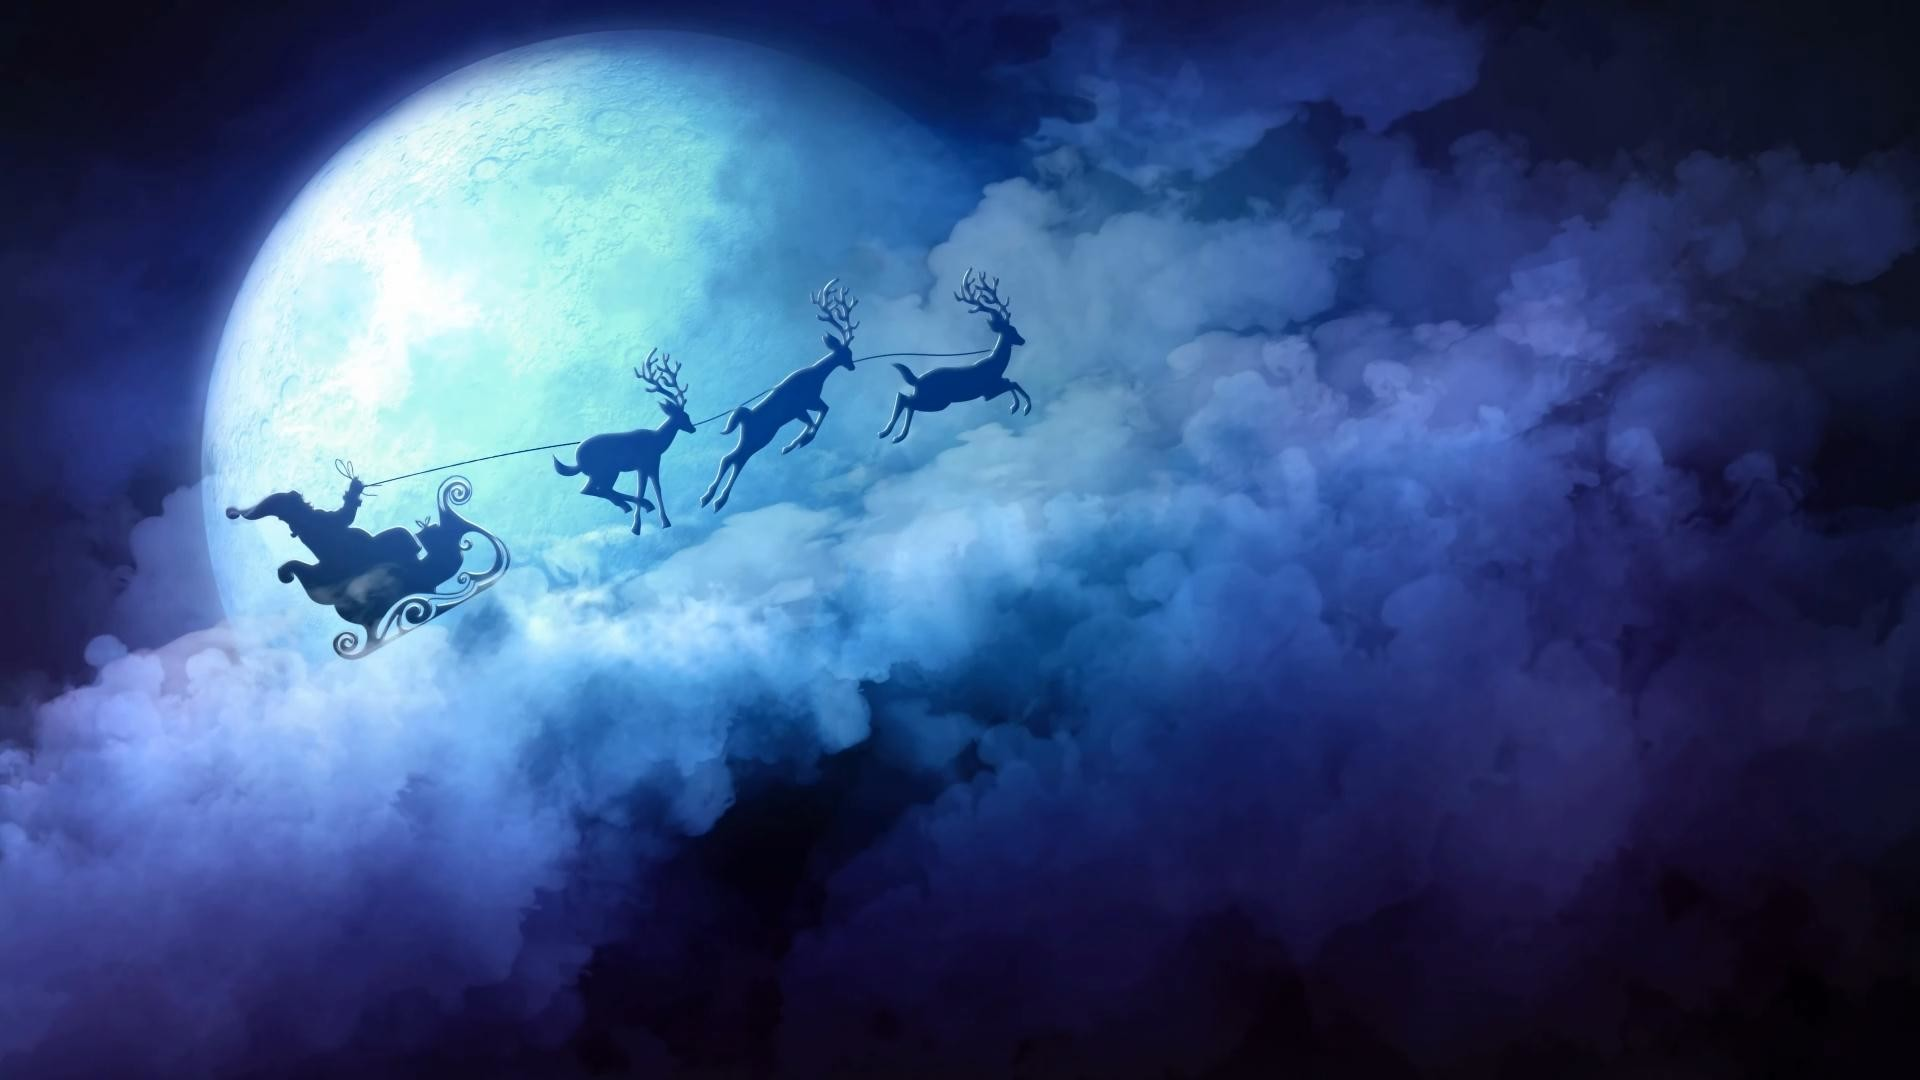 Disney christmas wallpapers 63 images 1920x1170 download hd disney castle images voltagebd Images